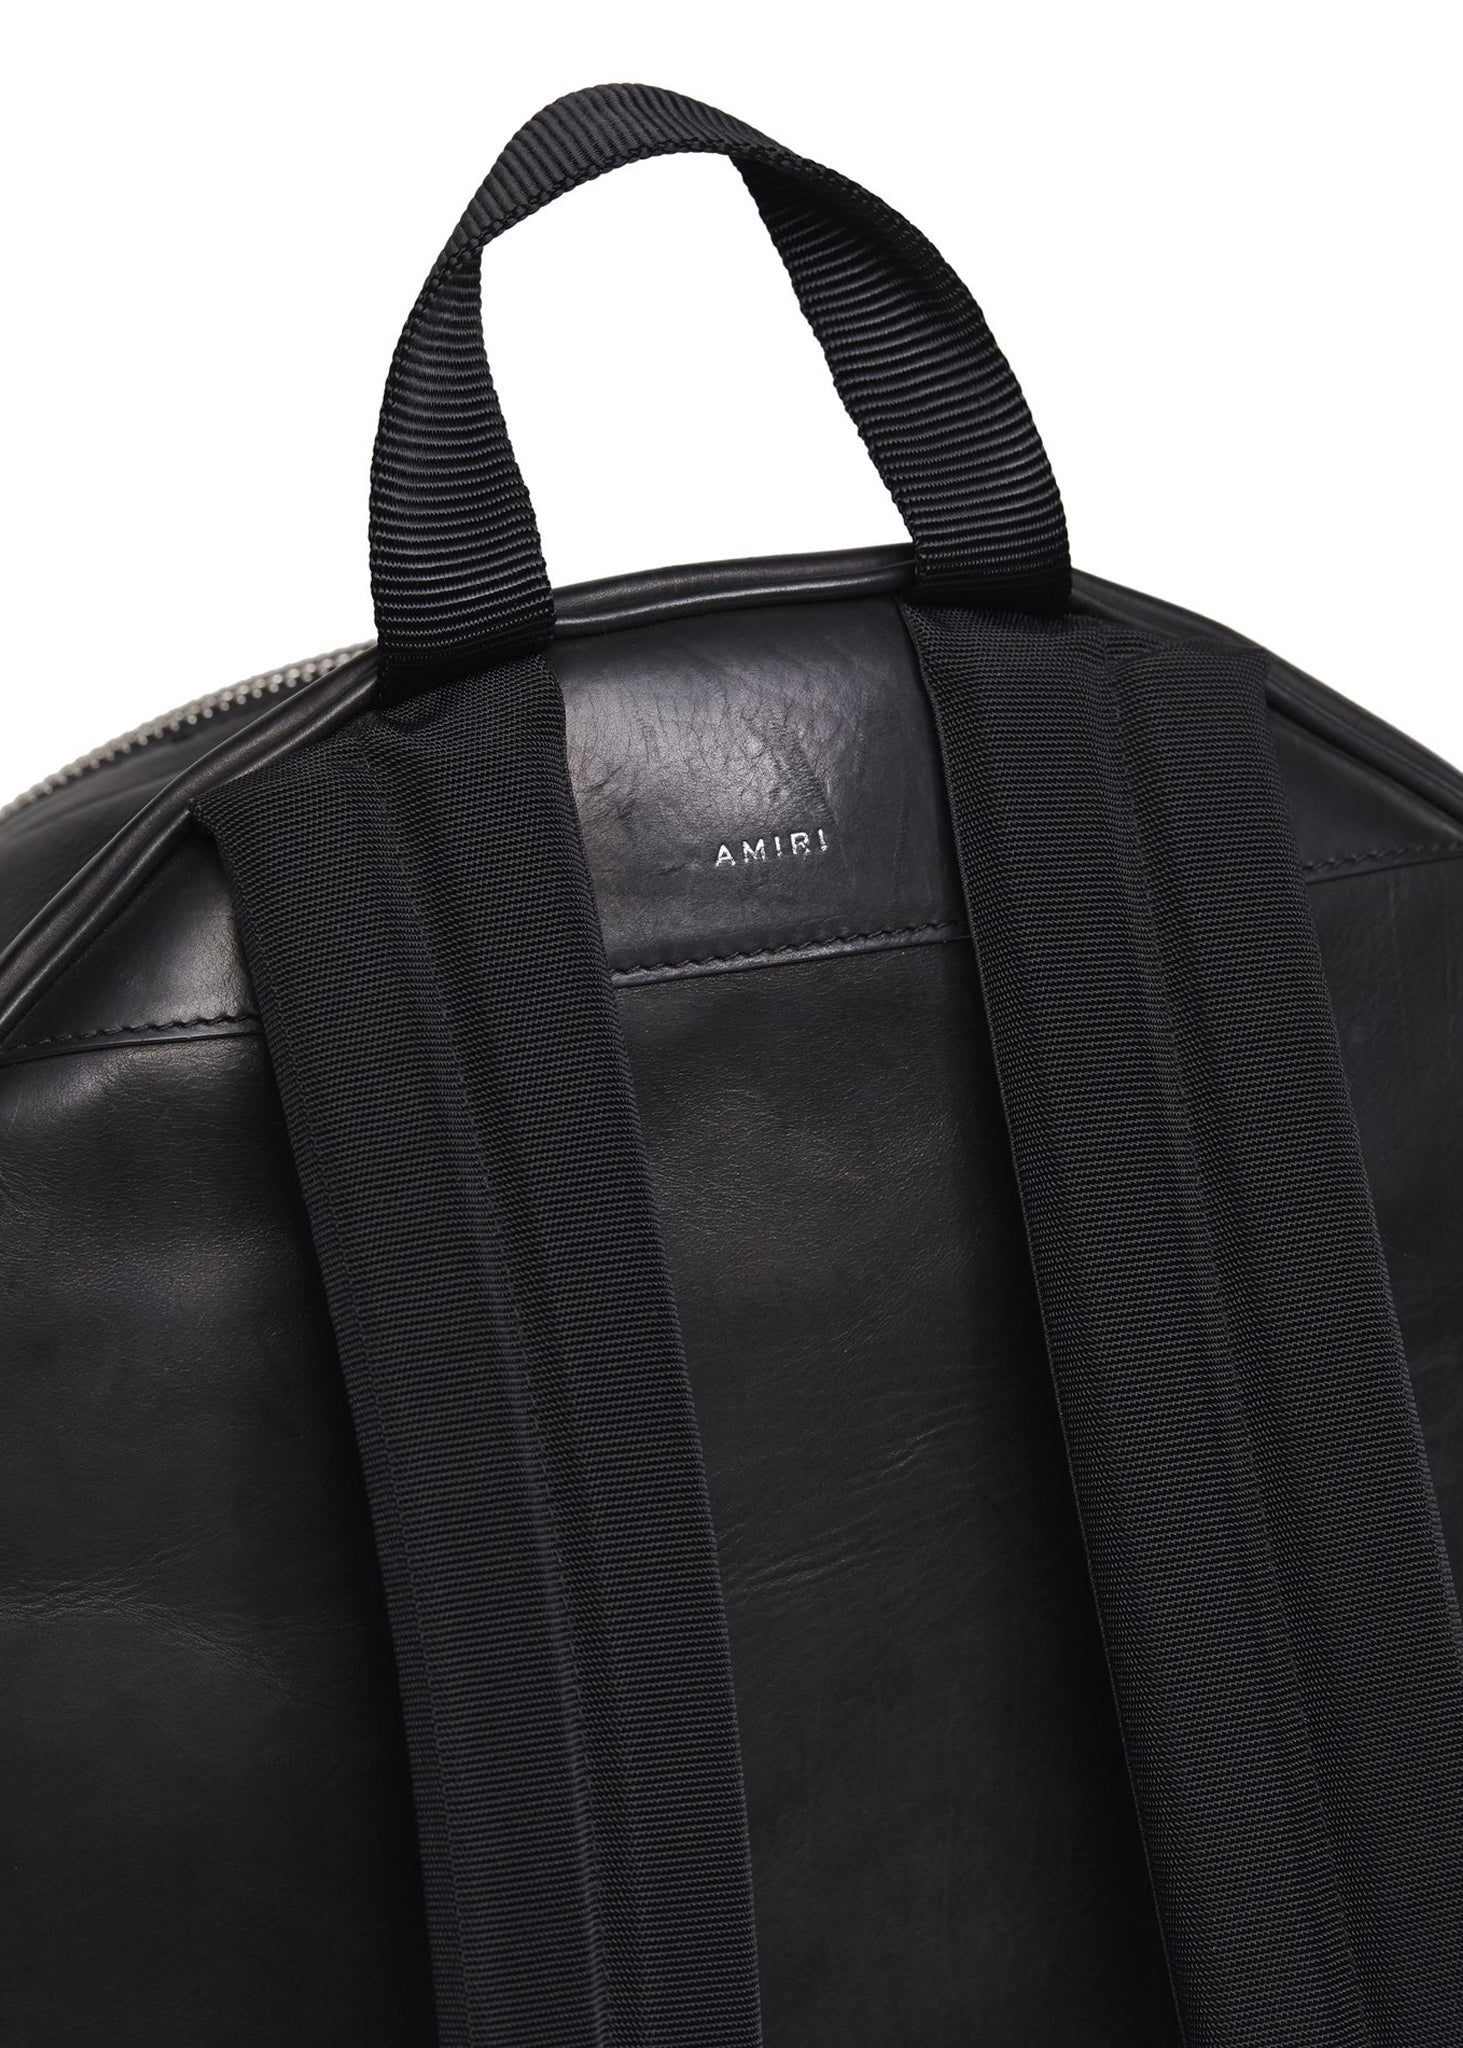 leather-backpack-image-1